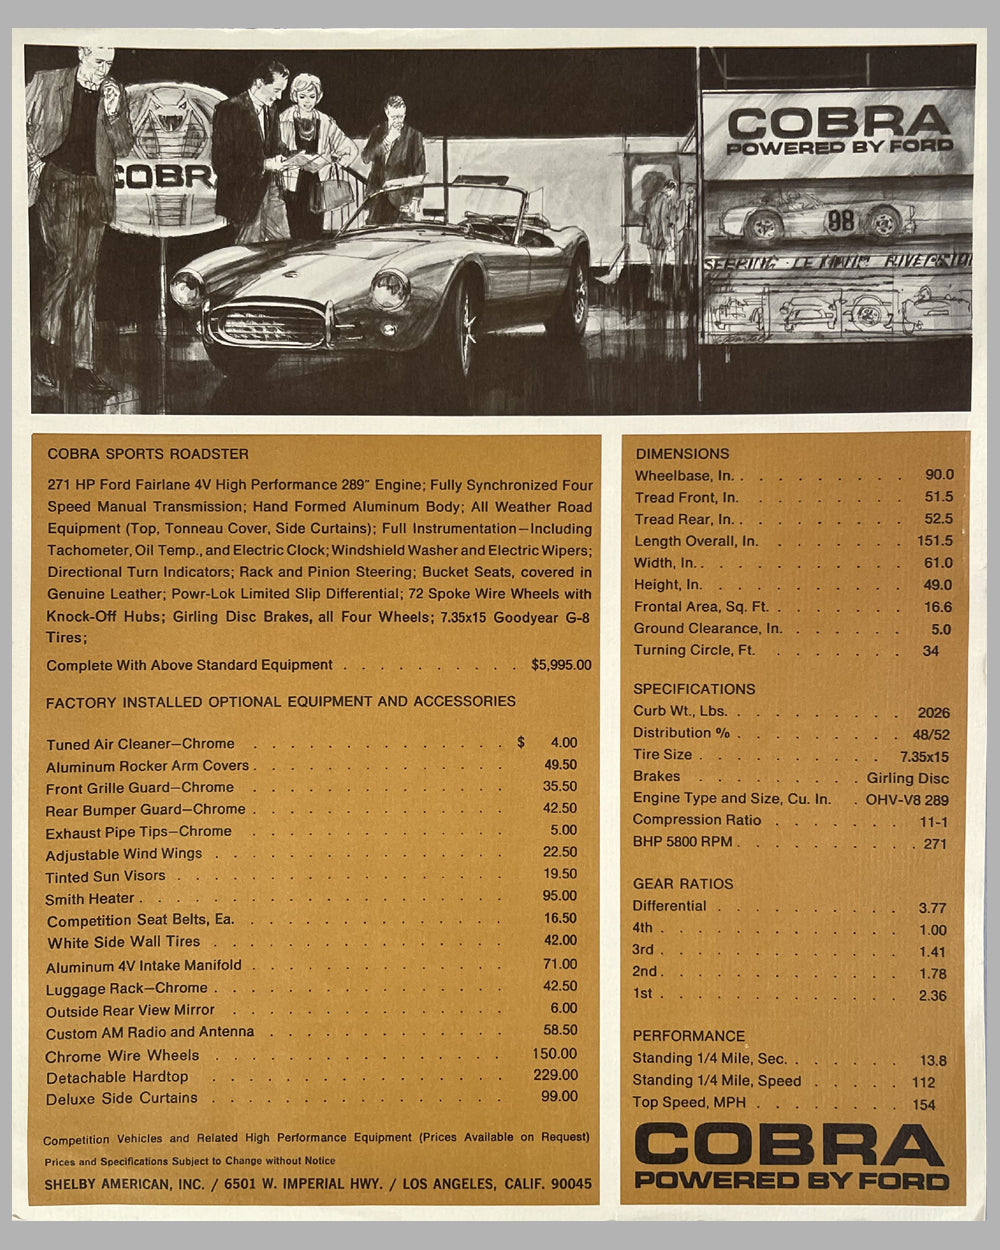 1963 Shelby Cobra with Ford 289 engine original sales sheet / brochure